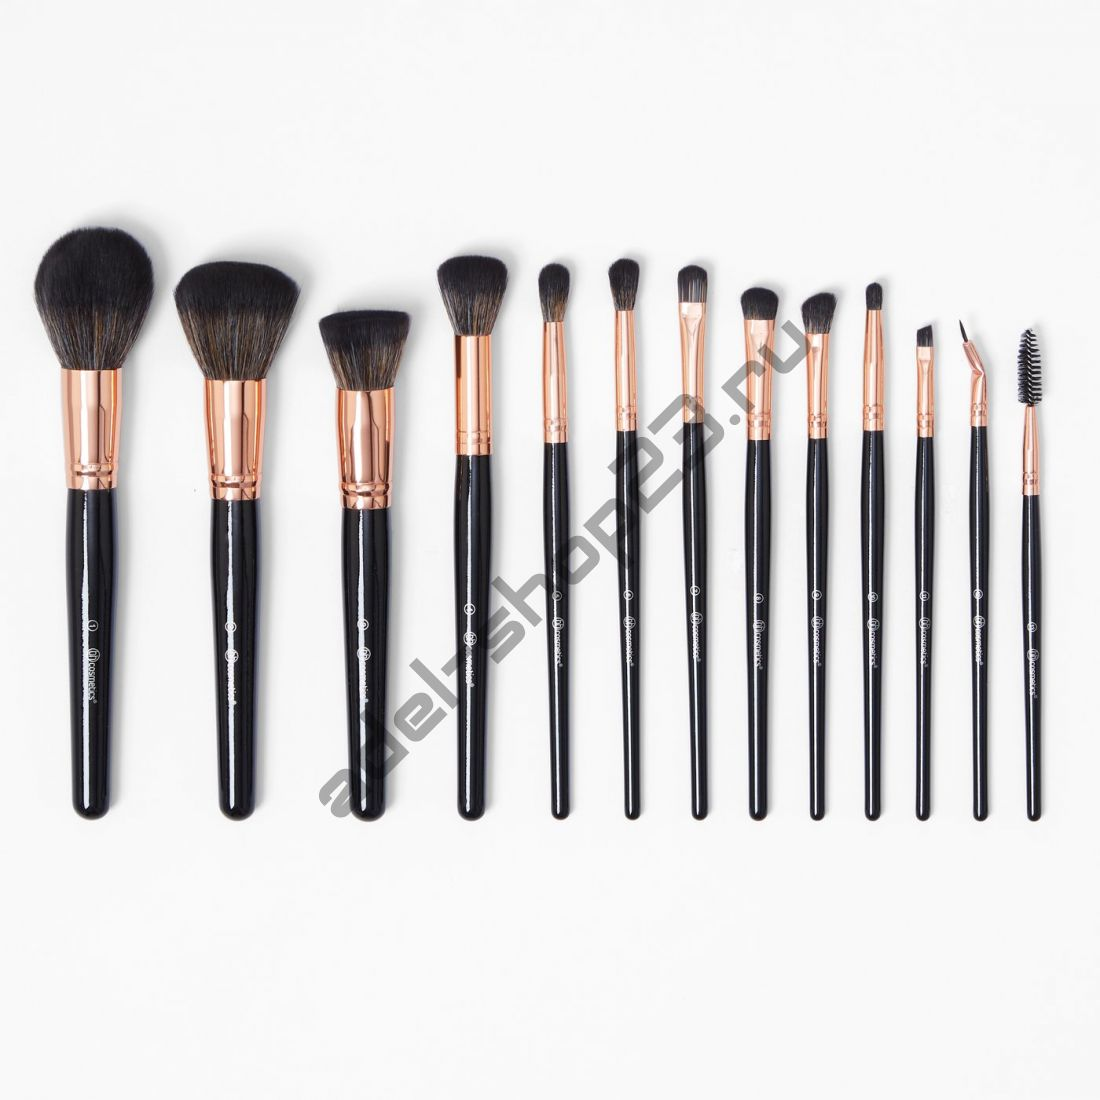 BH COSMETICS - набор из 13 кистей BH Signature Rose Gold — Brush Set